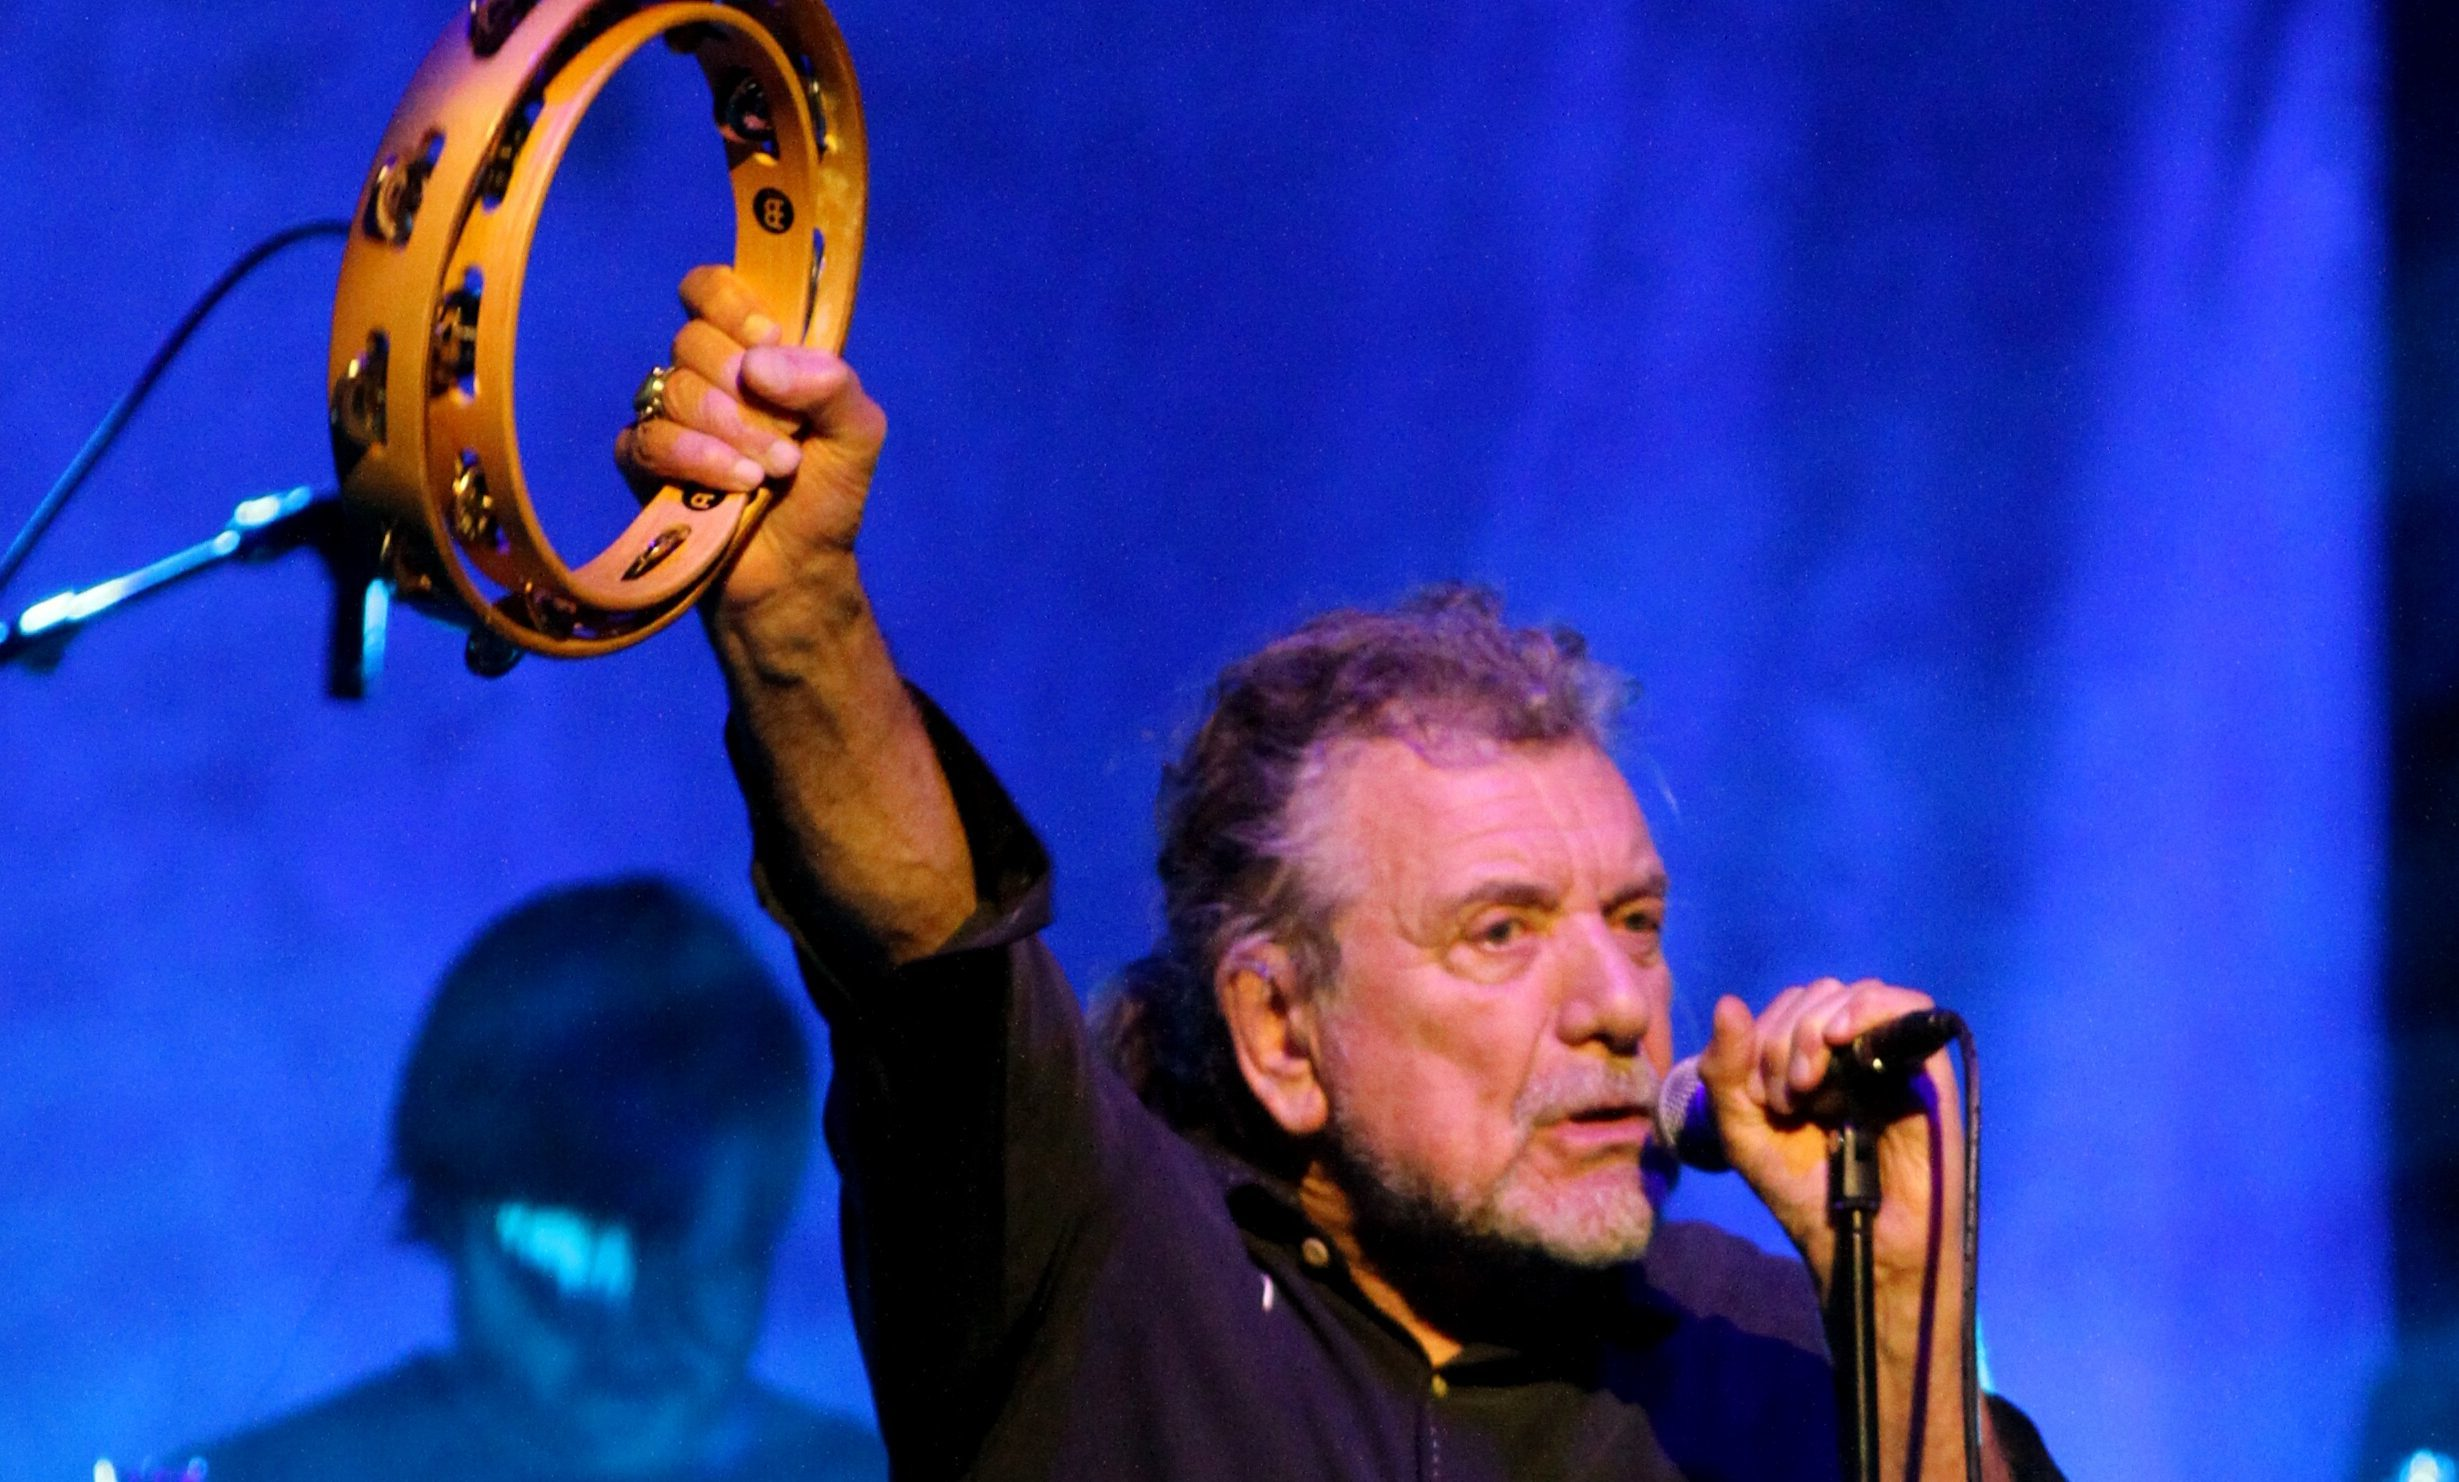 Courier Perth News- Robert Plant at perth concert hall,tuesday 28th november.